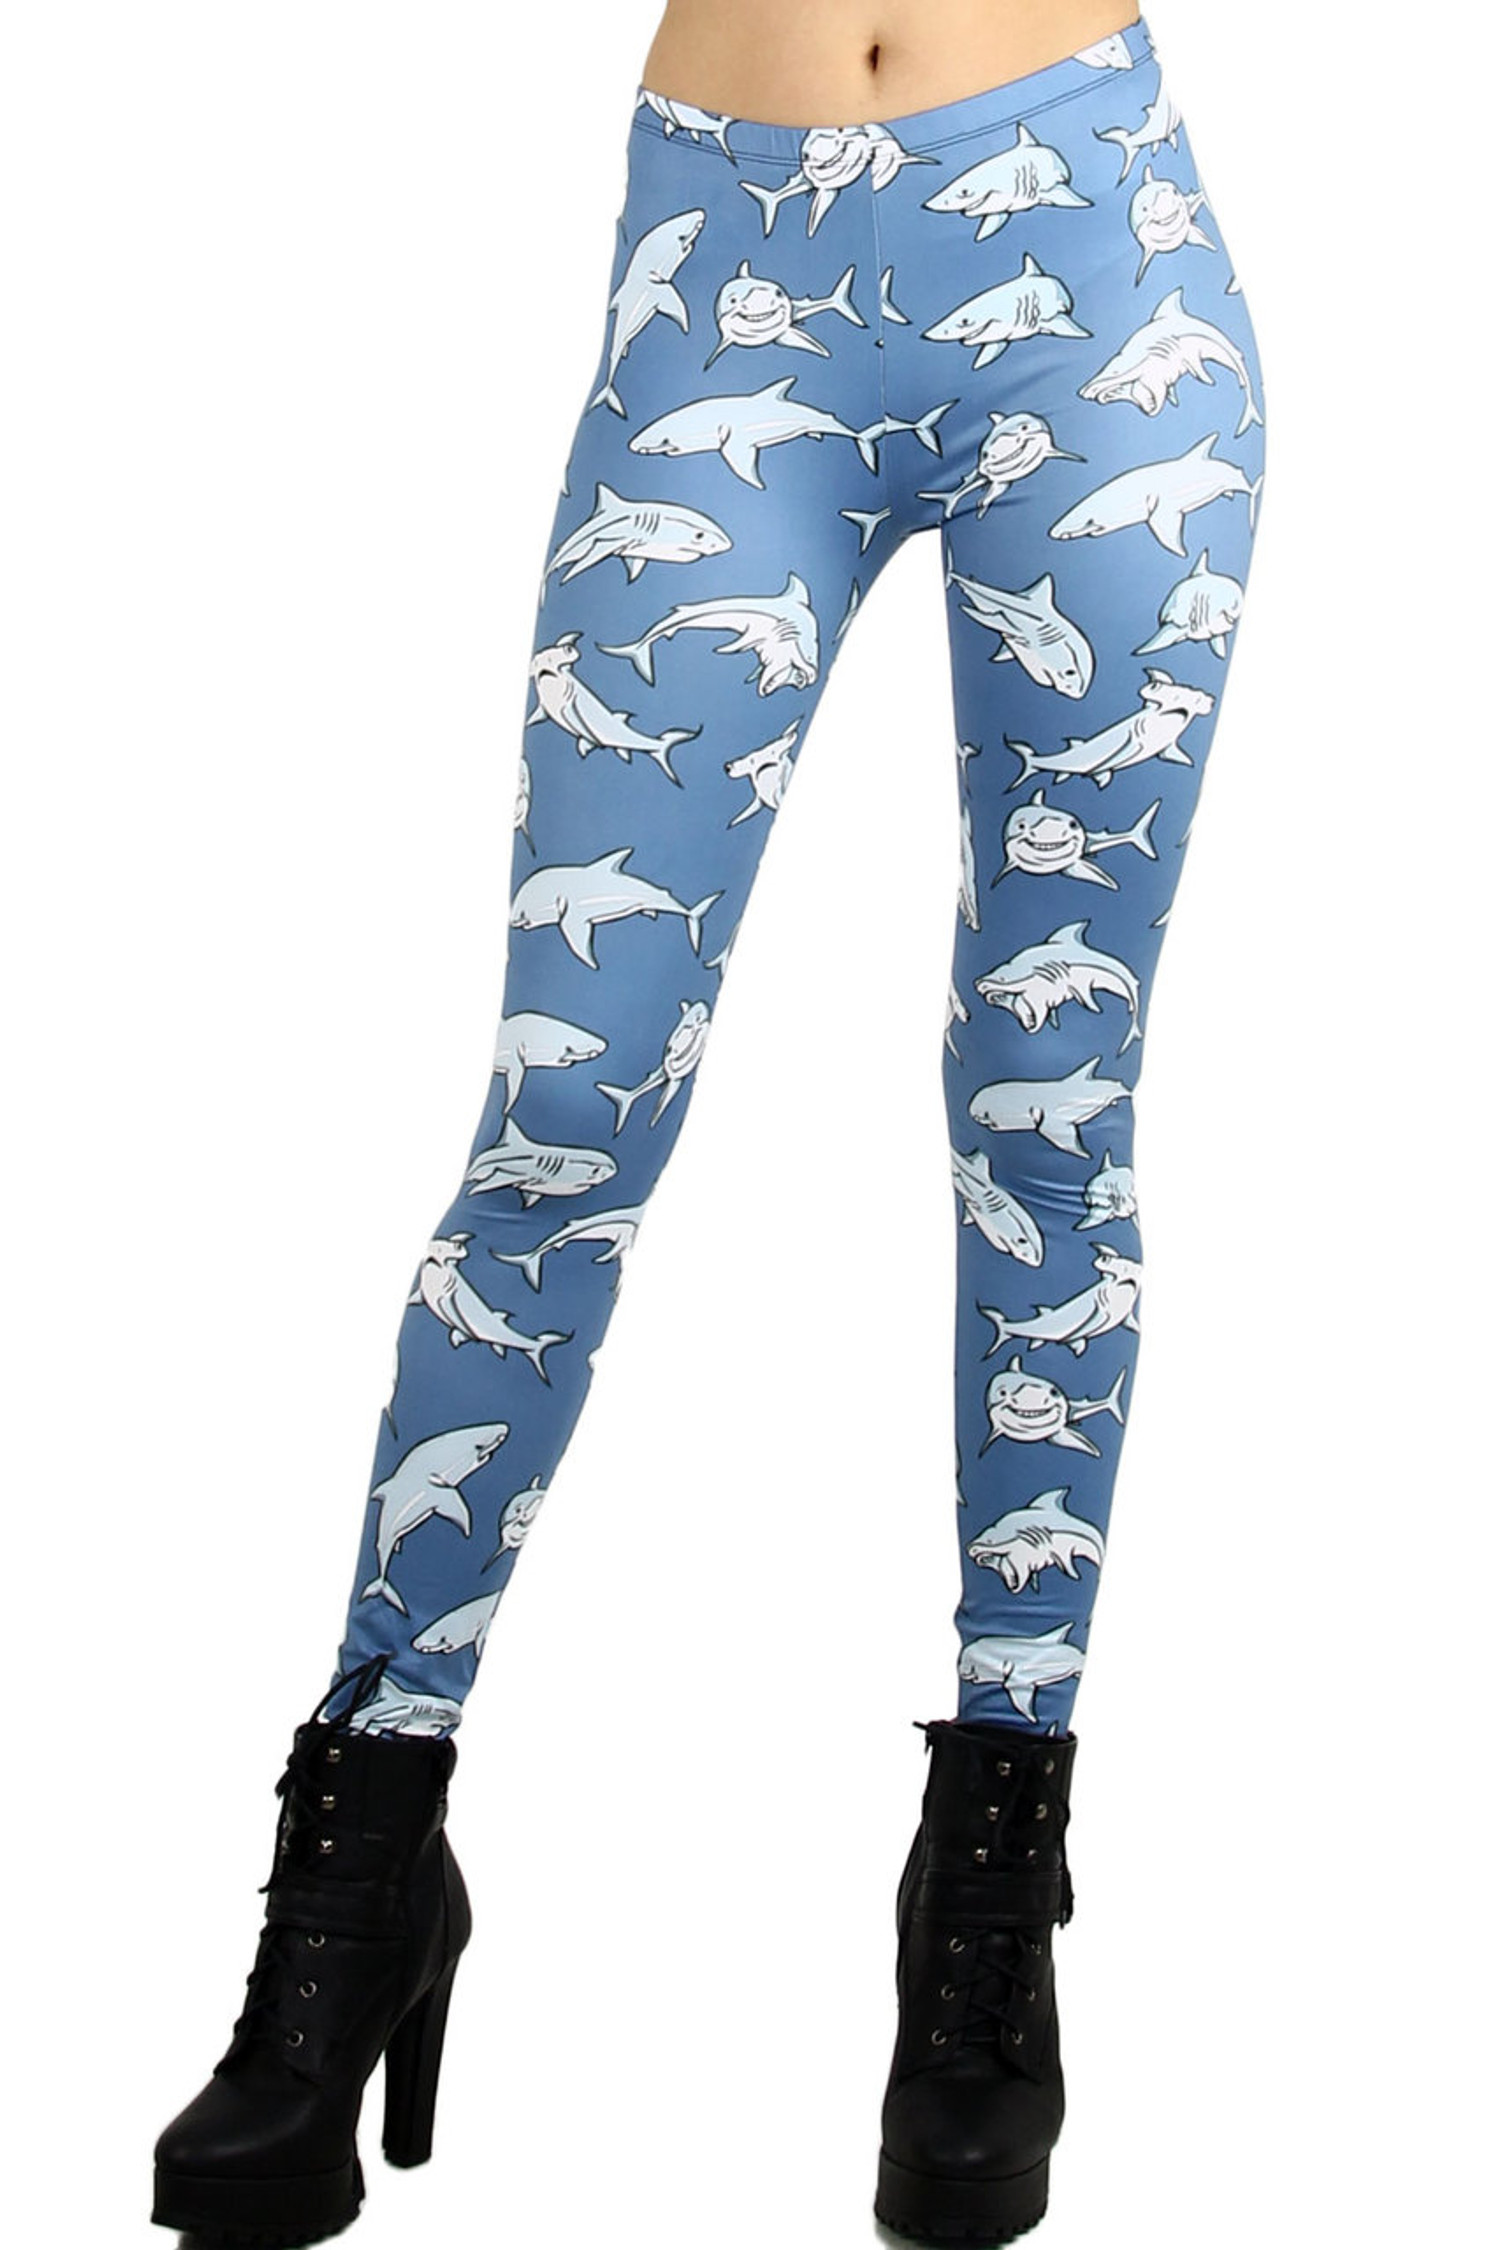 Swimming Sharks Leggings